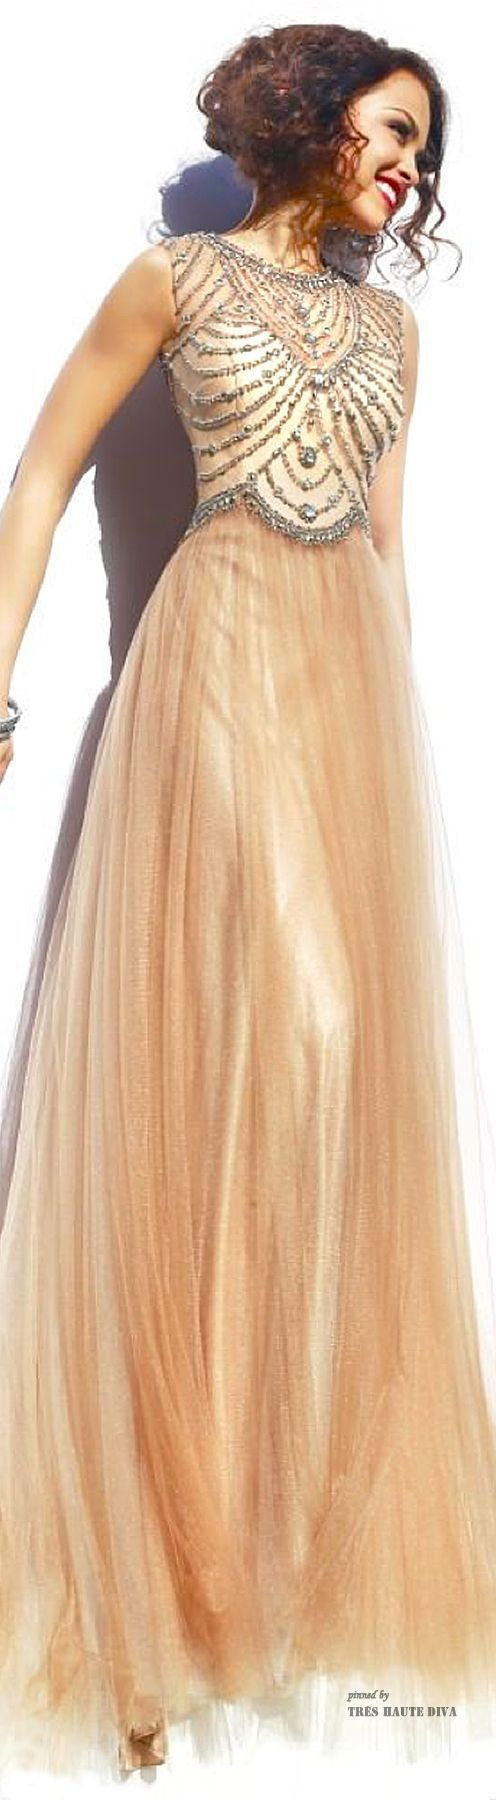 """prom dress. stunning!!! ♡♥♡♥ Thanks, Pinterest Pinners, for stopping by, viewing, re-pinning, & following my boards. Have a beautiful day! ^..^ and """"Feel free to share on Pinterest ^..^ #topfashion #fashionandclothingblog #fashionupdates *•.¸♡¸.•**•.¸ ┊ ┊"""